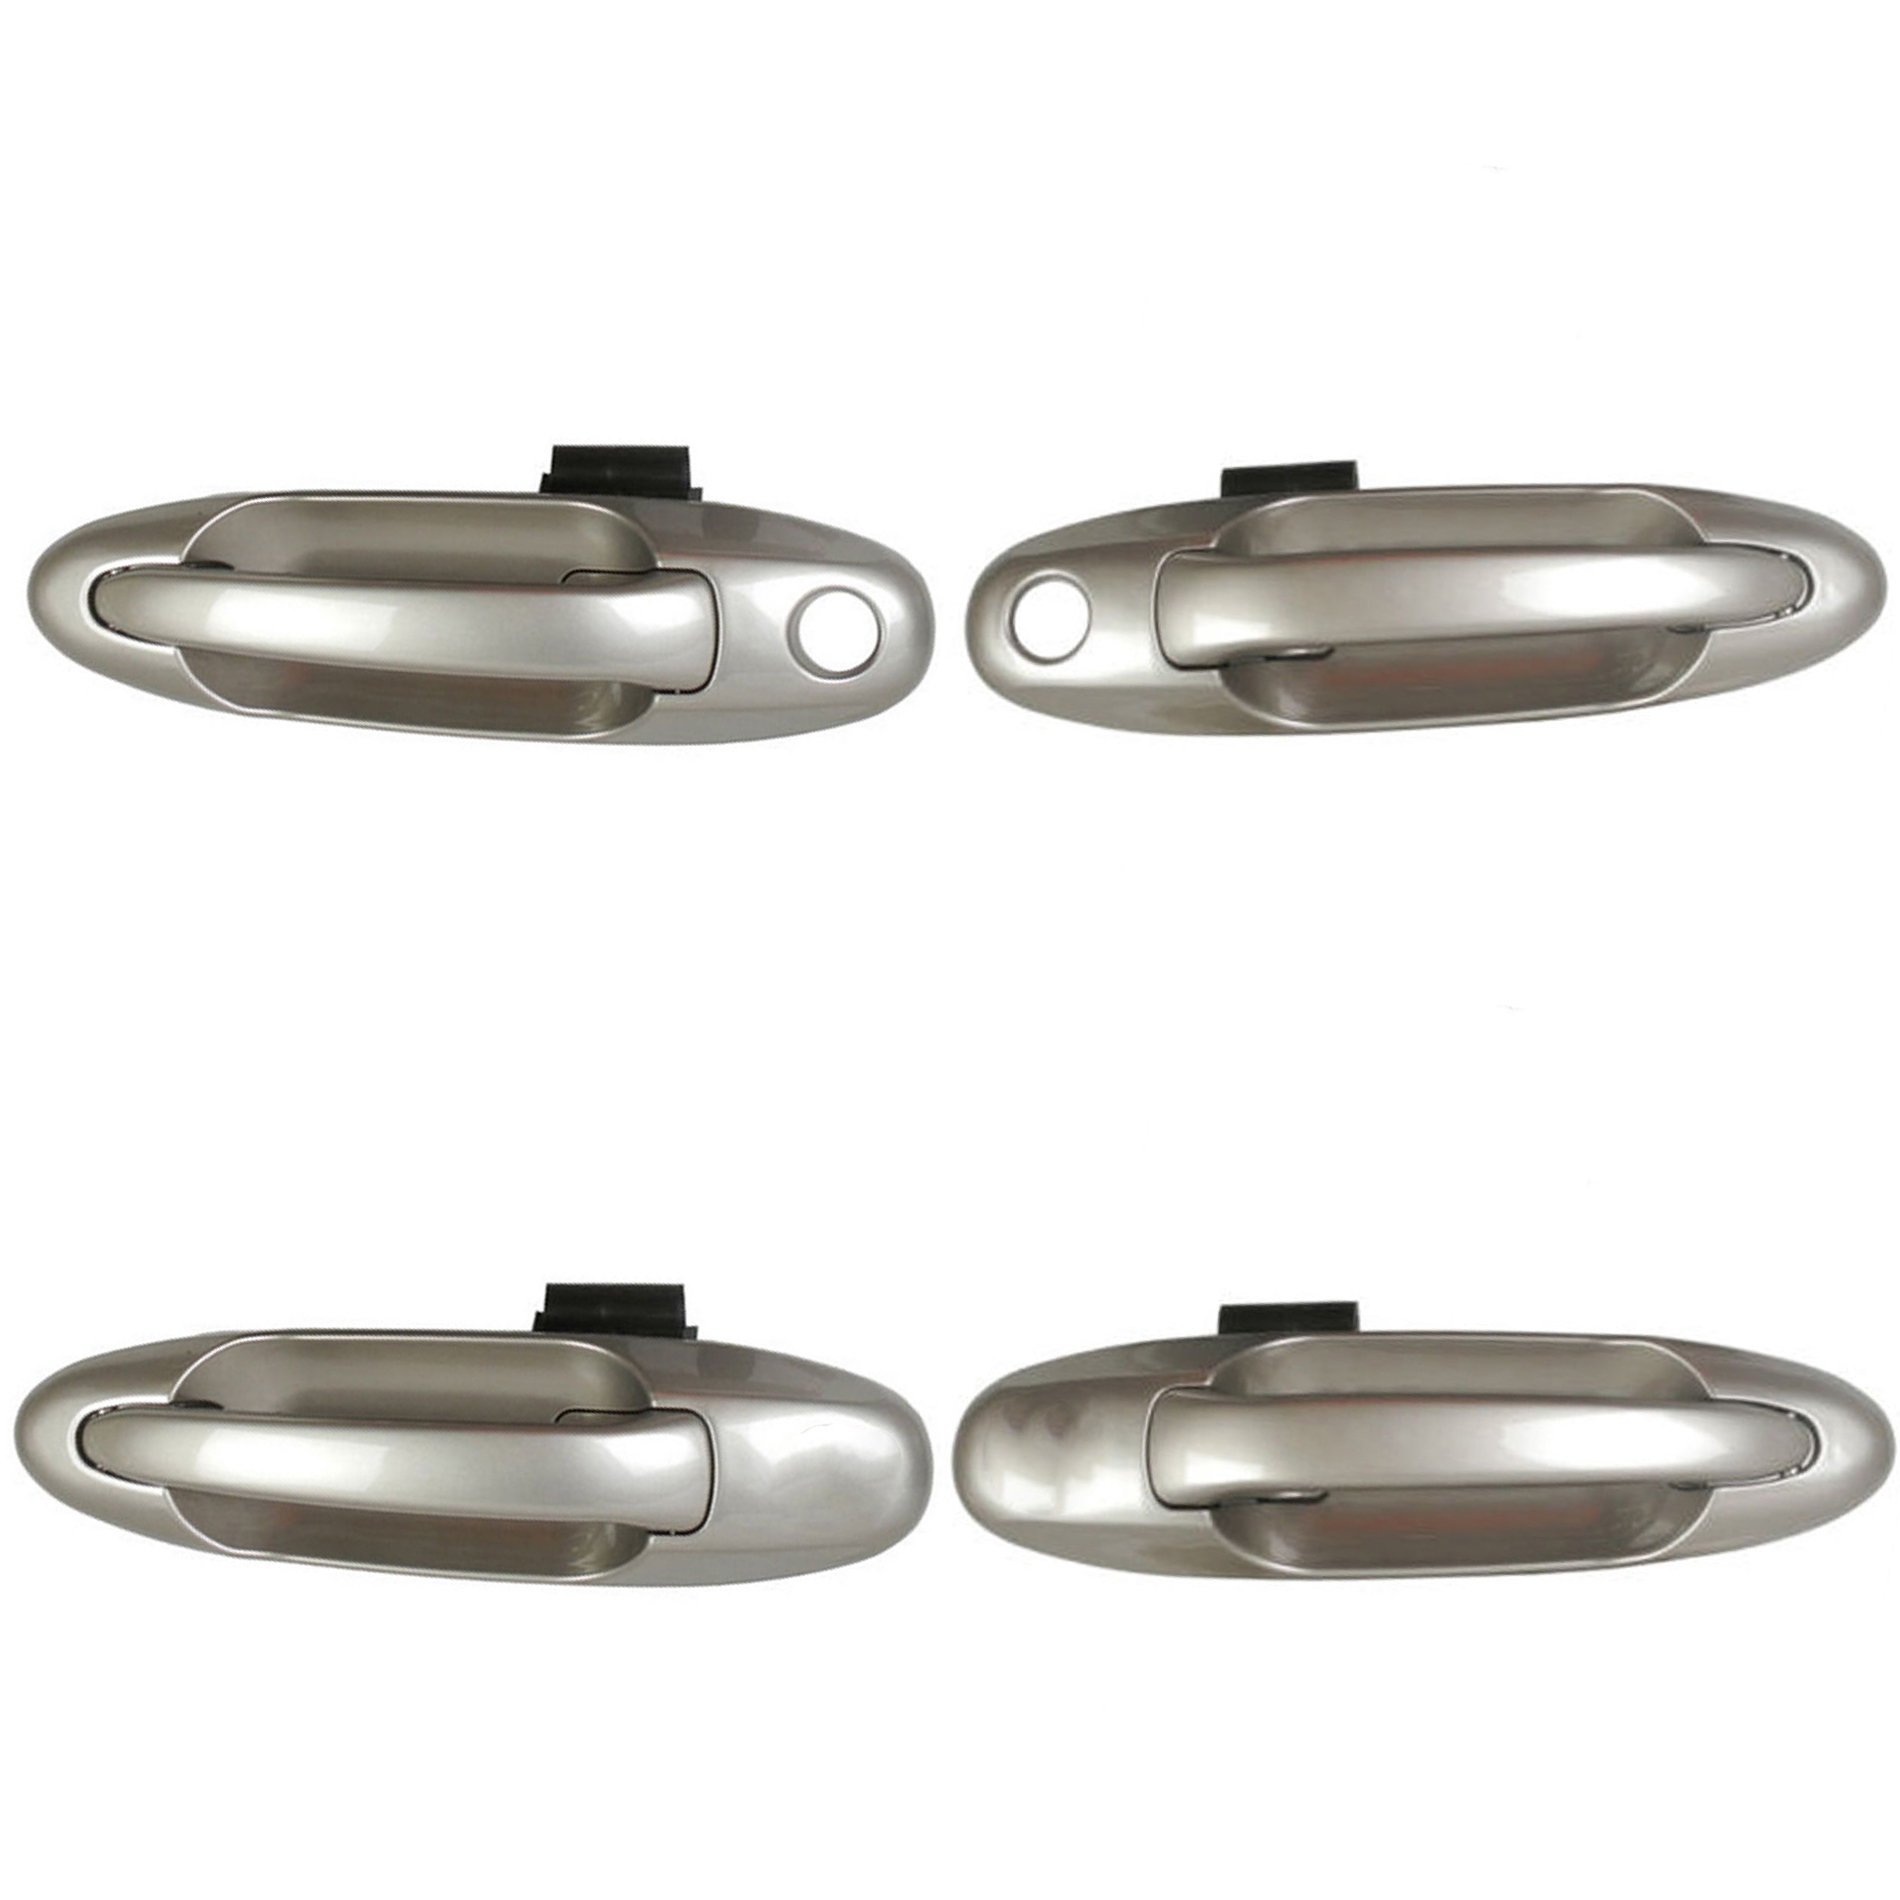 CF Advance For 01-07 Toyota Tundra Sequoia Front Rear Left Right Outside Door Handle Set of 4PCS 4Q2 Desert Sand Mica 2001 2002 2003 2004 2005 2006 2007